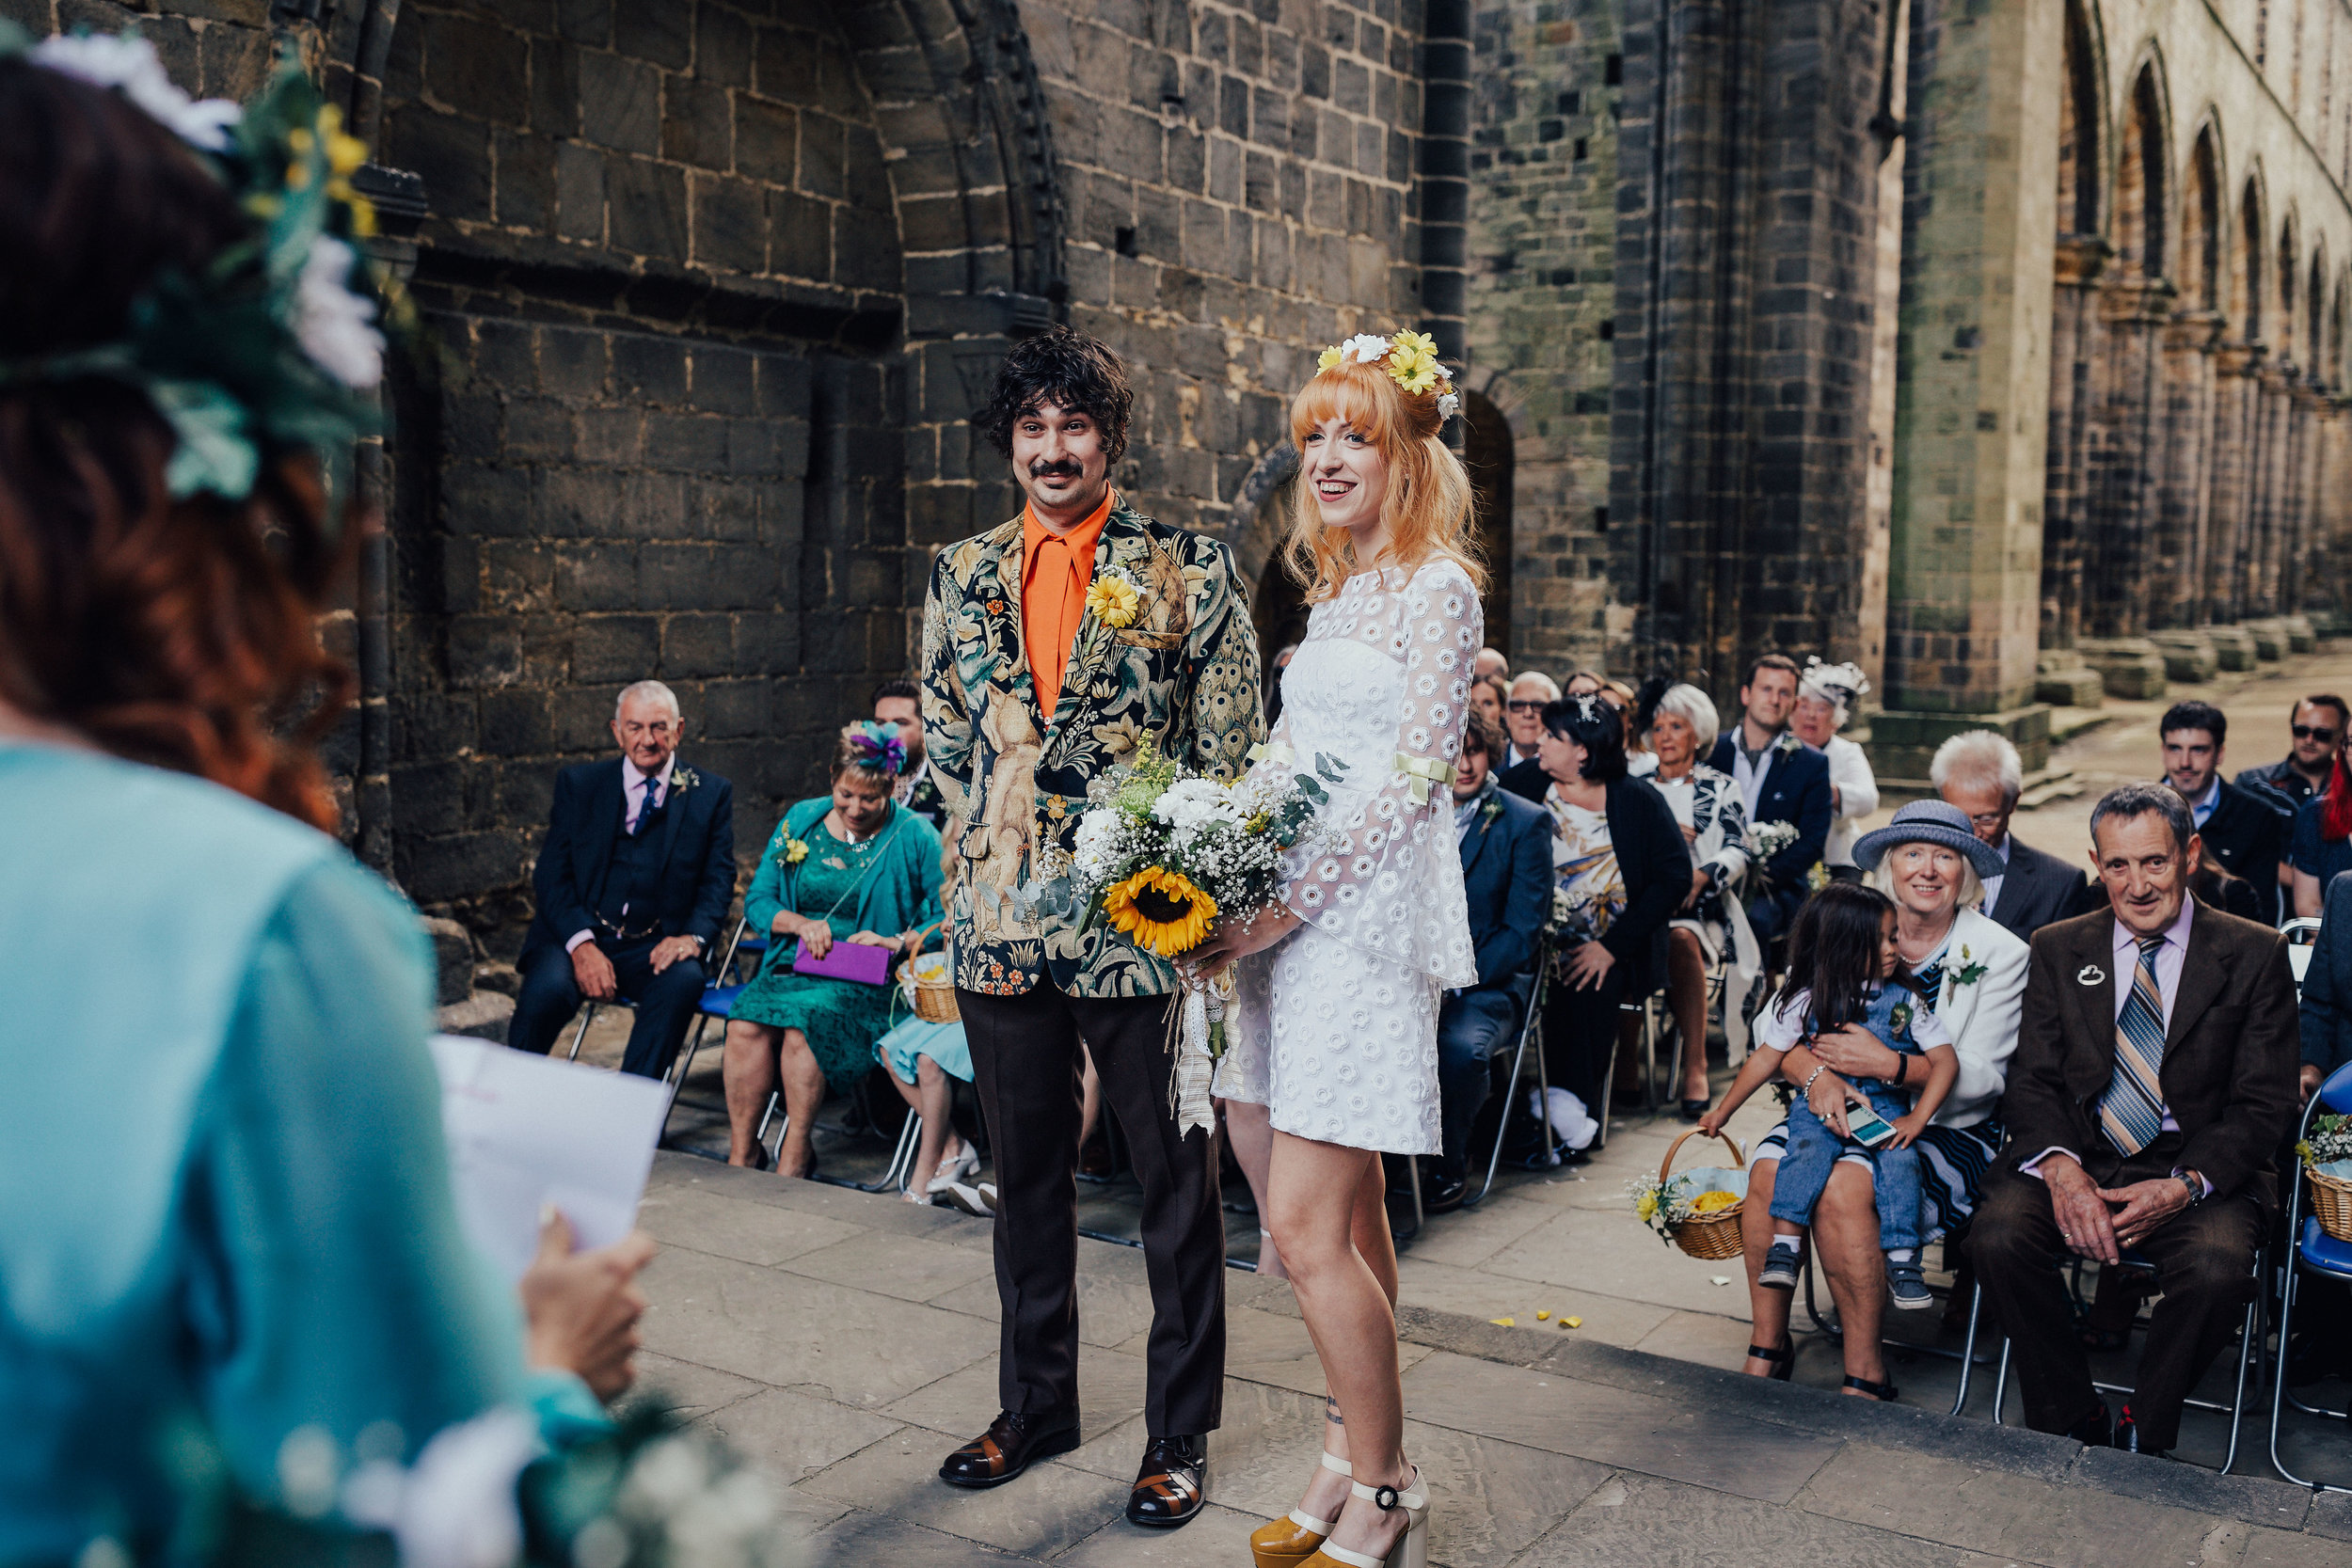 ALTERNATIVE_WEDDING_PHOTOGRAPHY_LEEDS_UK_PJ_PHILLIPS_PHOTOGRAPHY_61.jpg